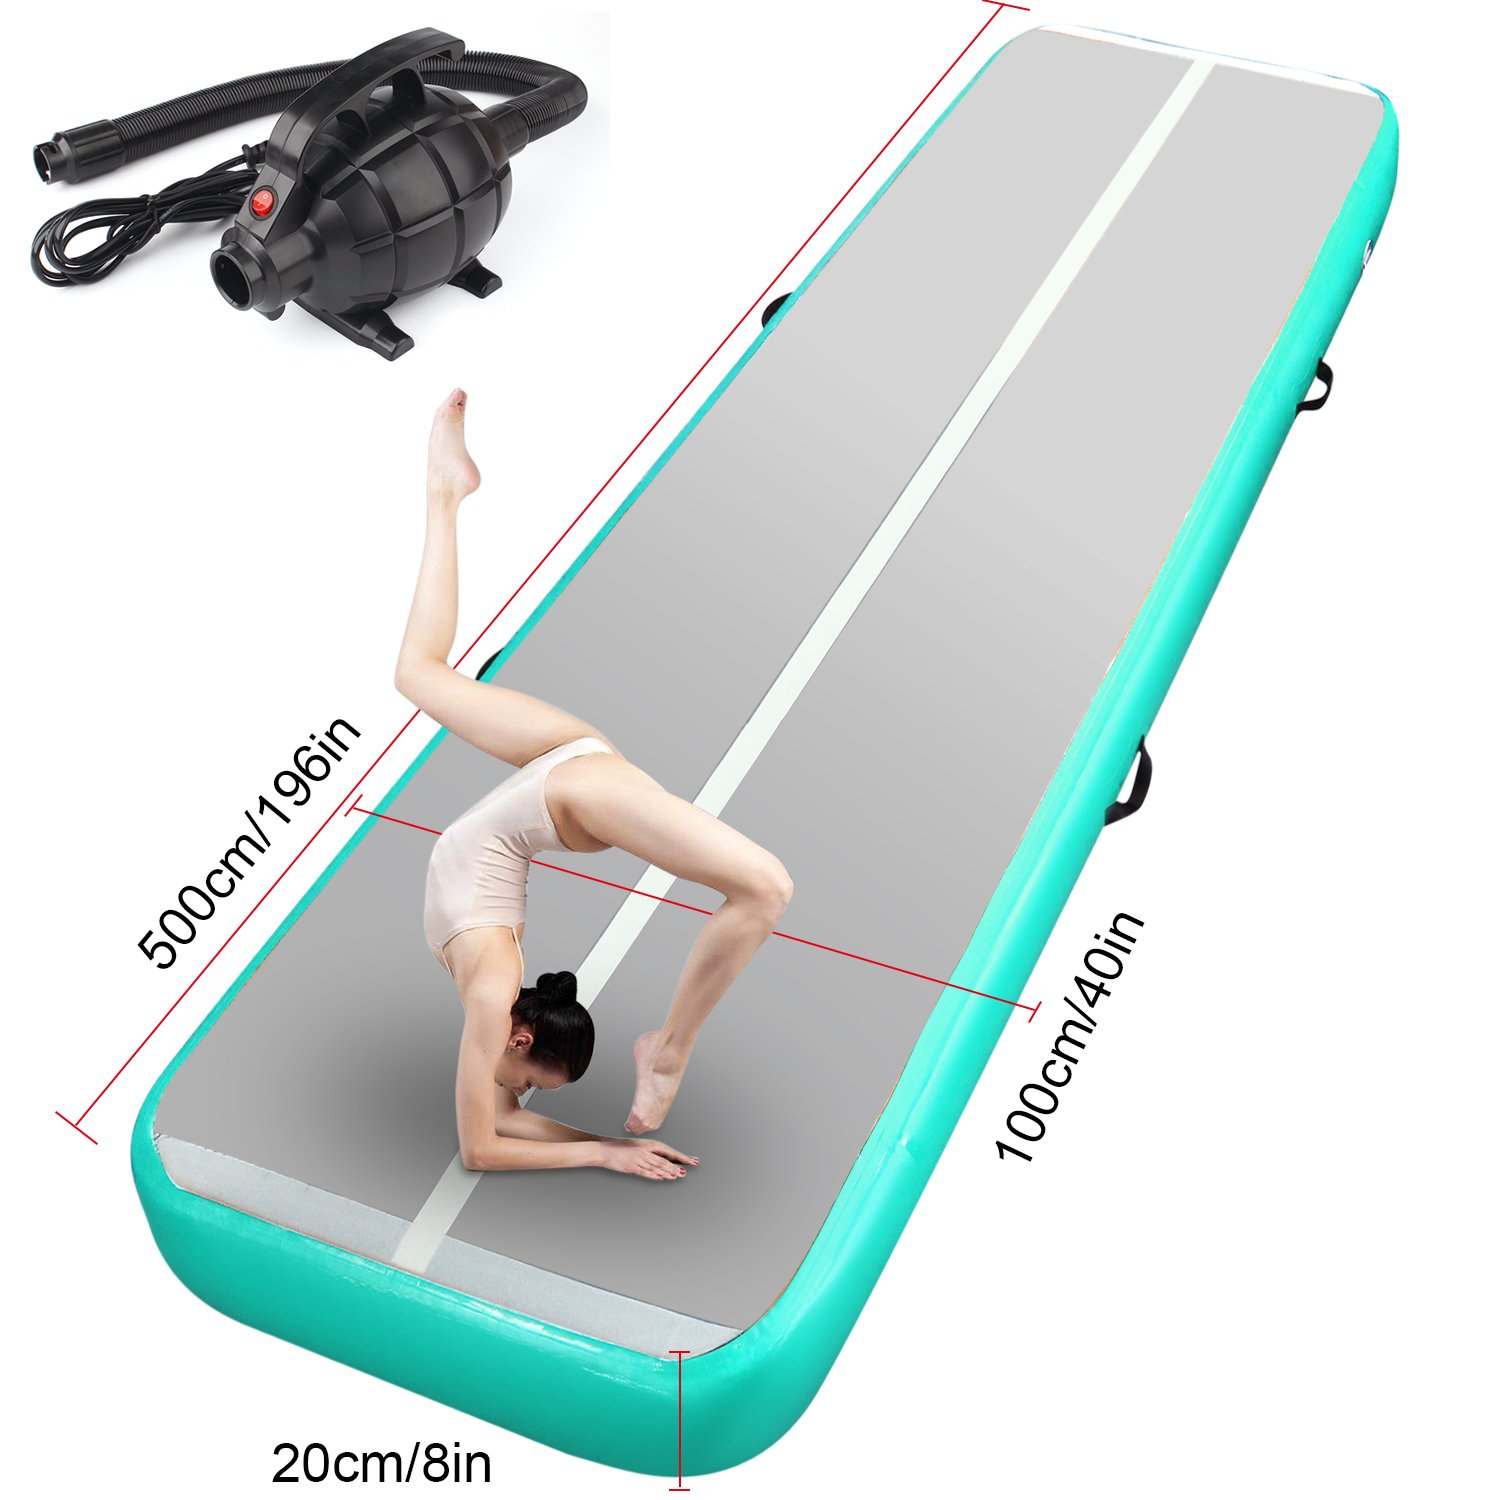 FBSPORT 10ft 13ft 16ft 20ft Inflatable Gymnastics Mat Airtrack Tumbling Mat Non-Slipping Floor Mattress with Air Pump for ...